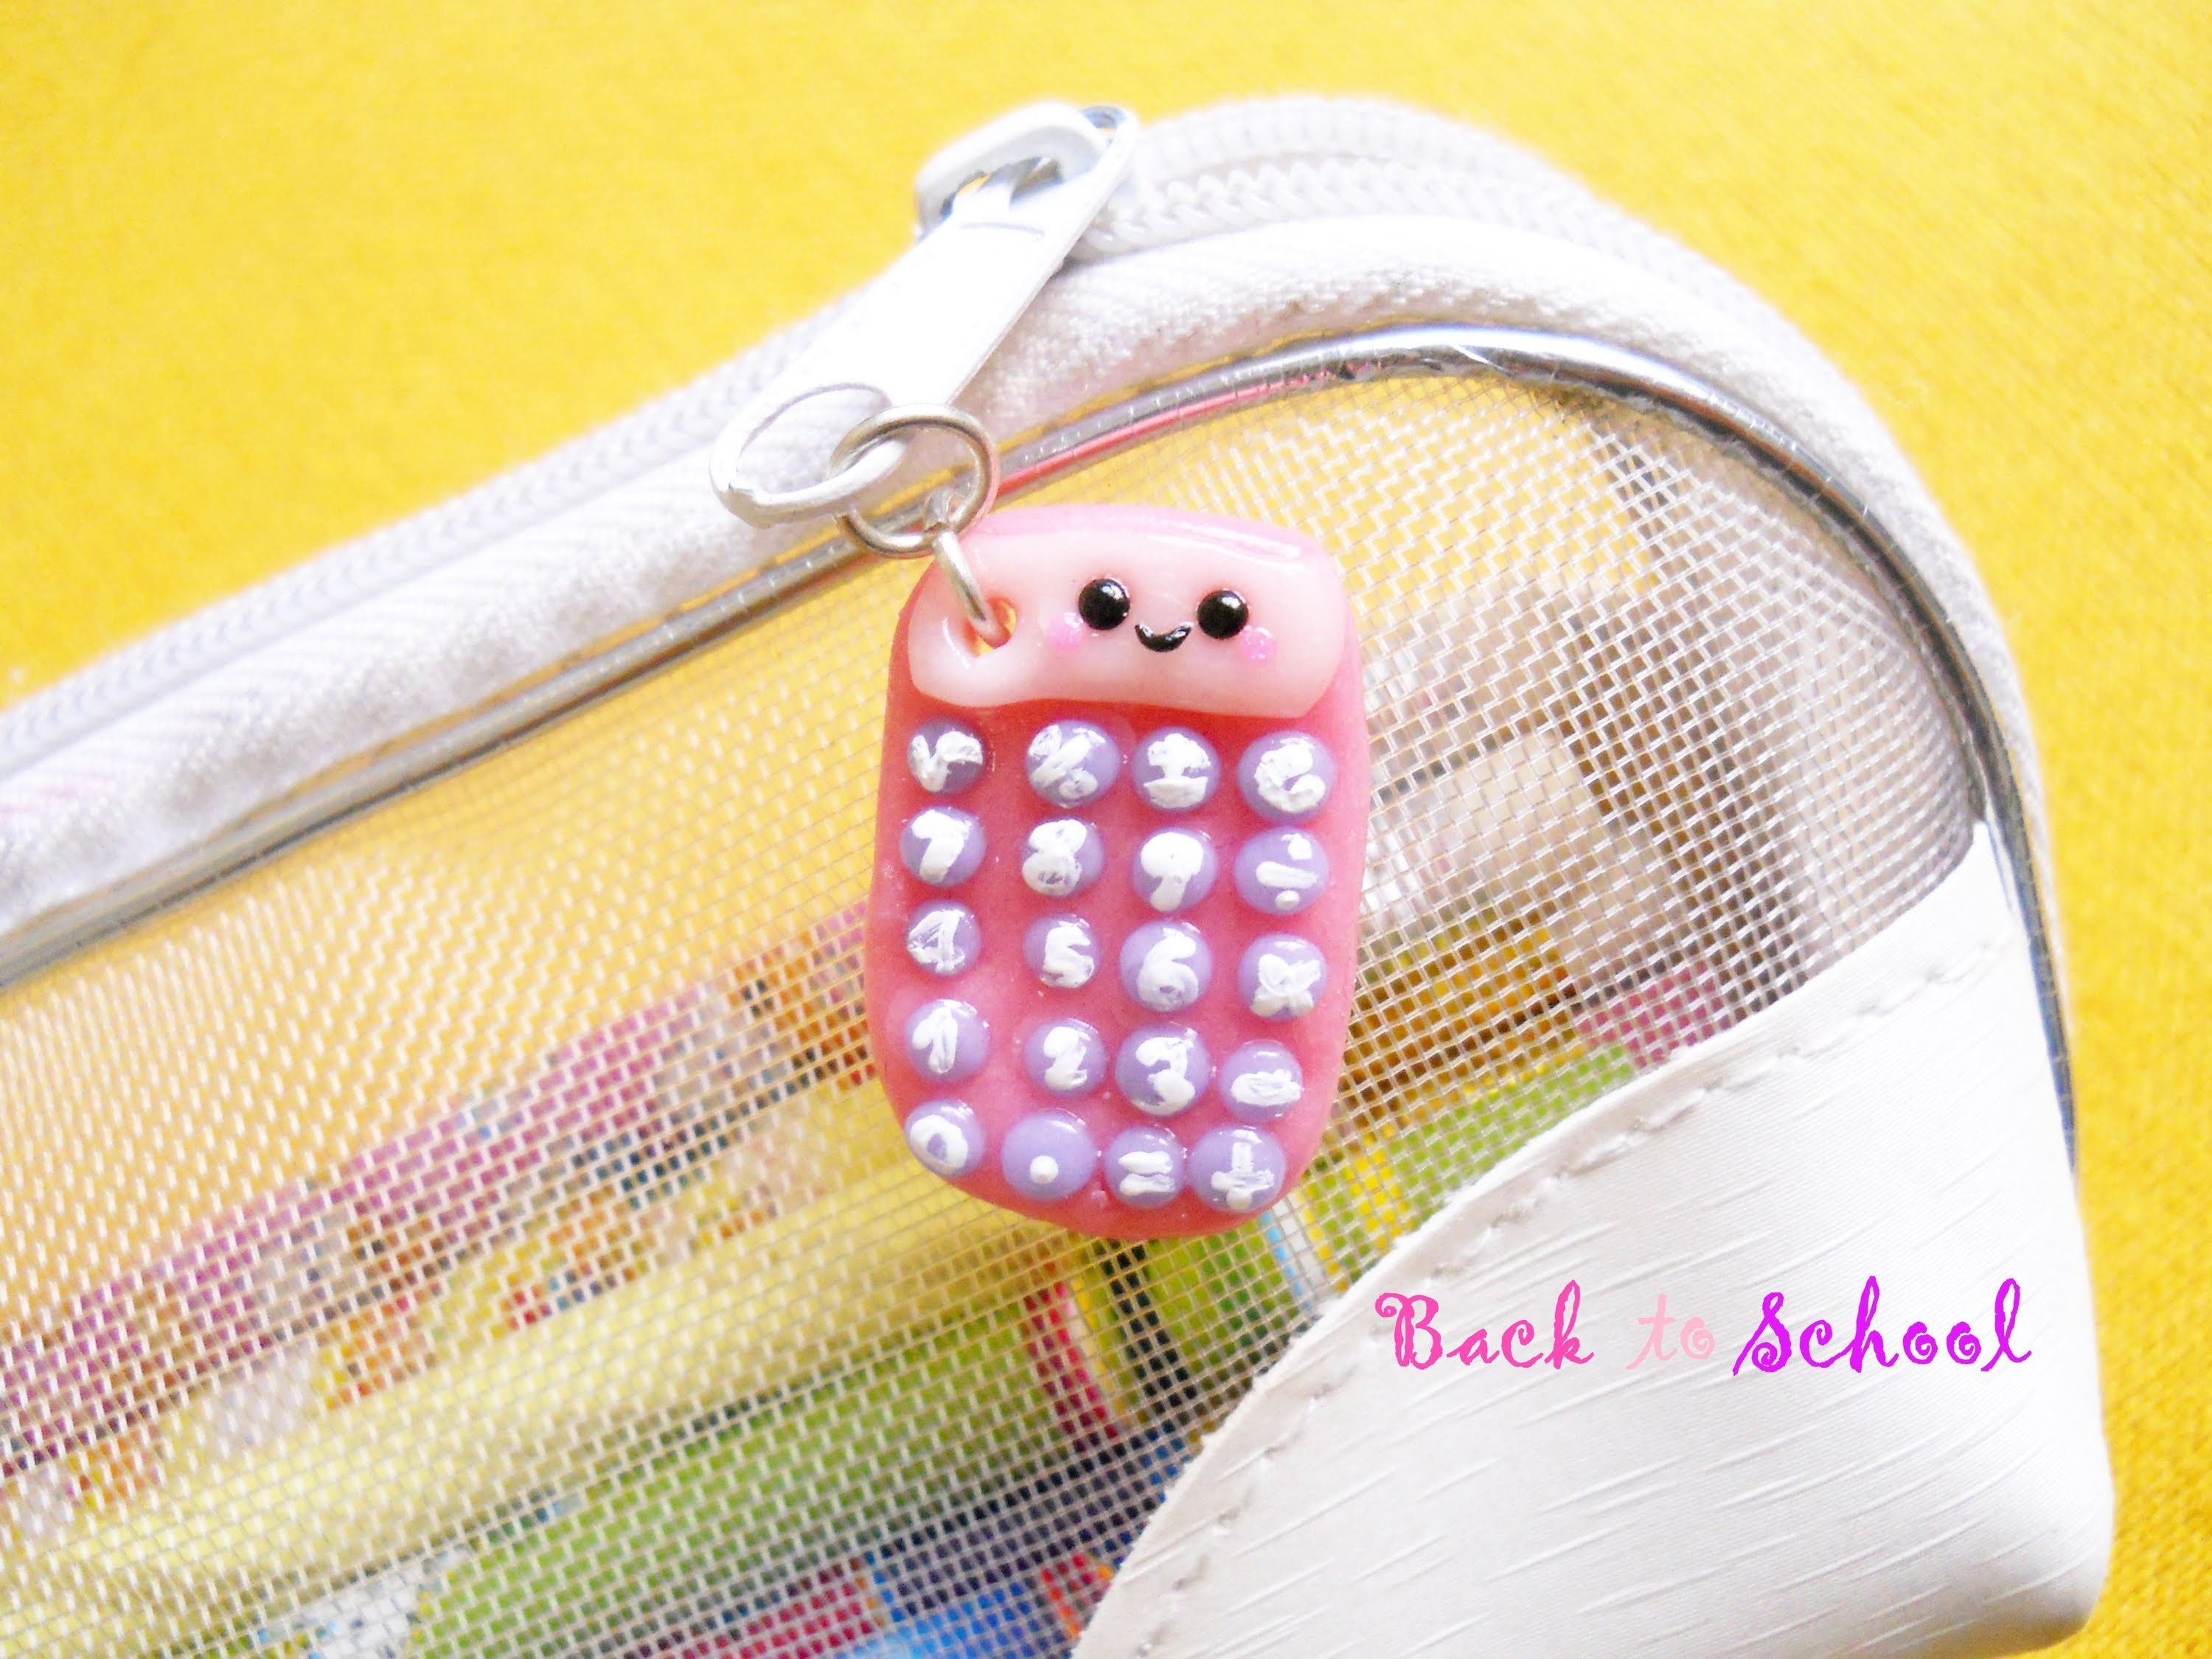 Kawaii Calculator - Calcolatrice Kawaii ✎ Back to School. Polymer Clay Tutorial